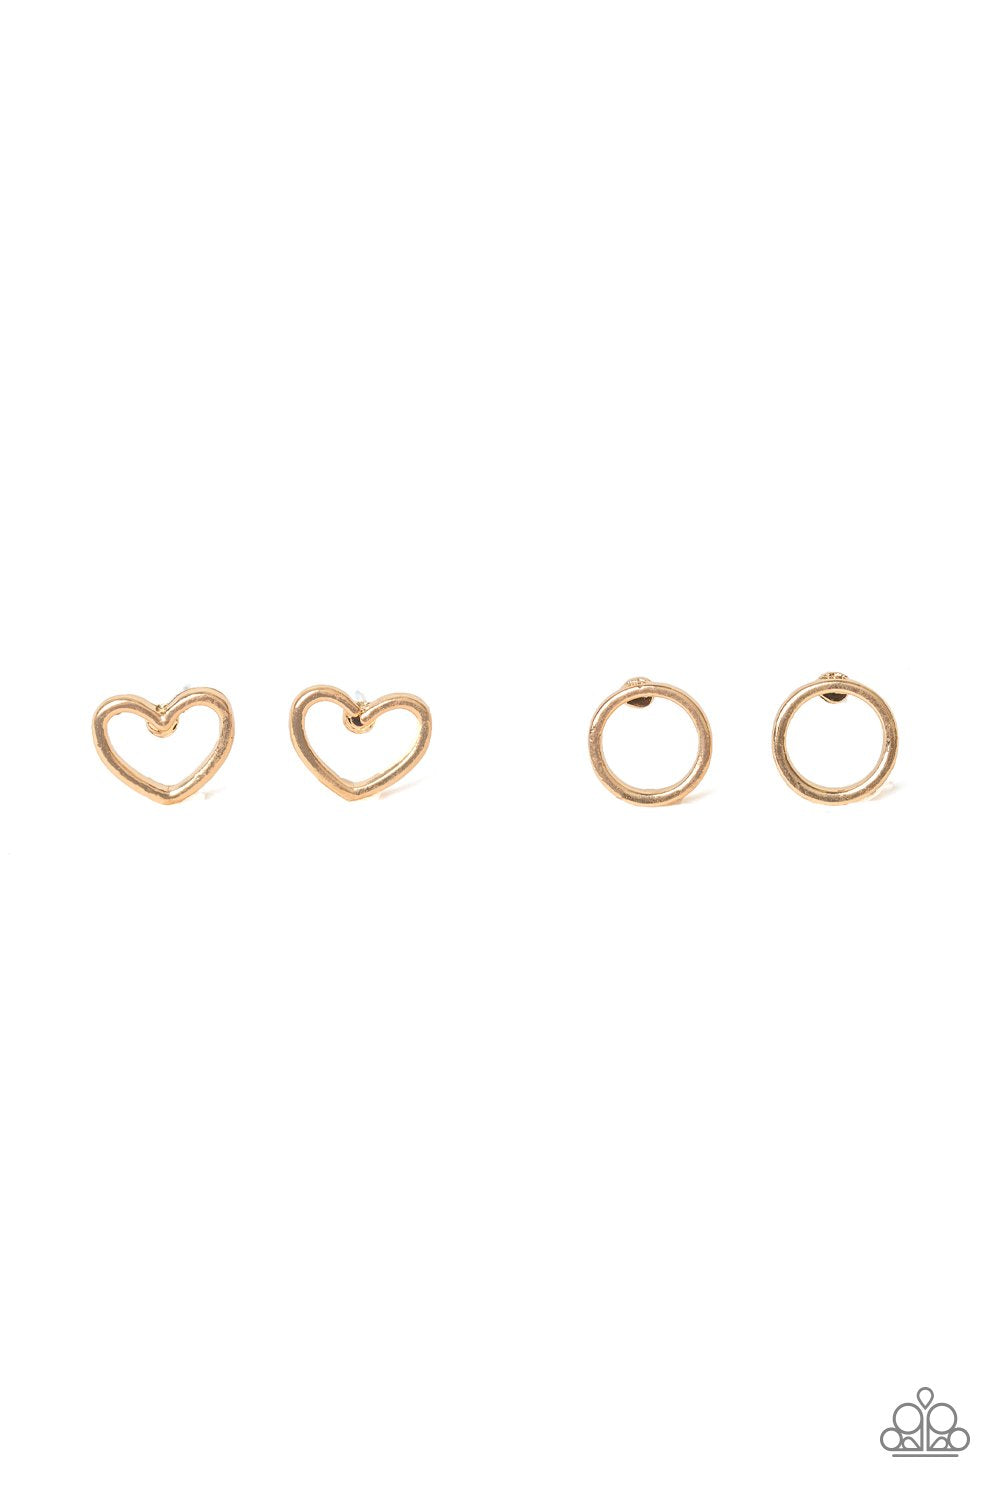 Paparazzi Starlet Shimmer Circle Earring - Bling It On Online